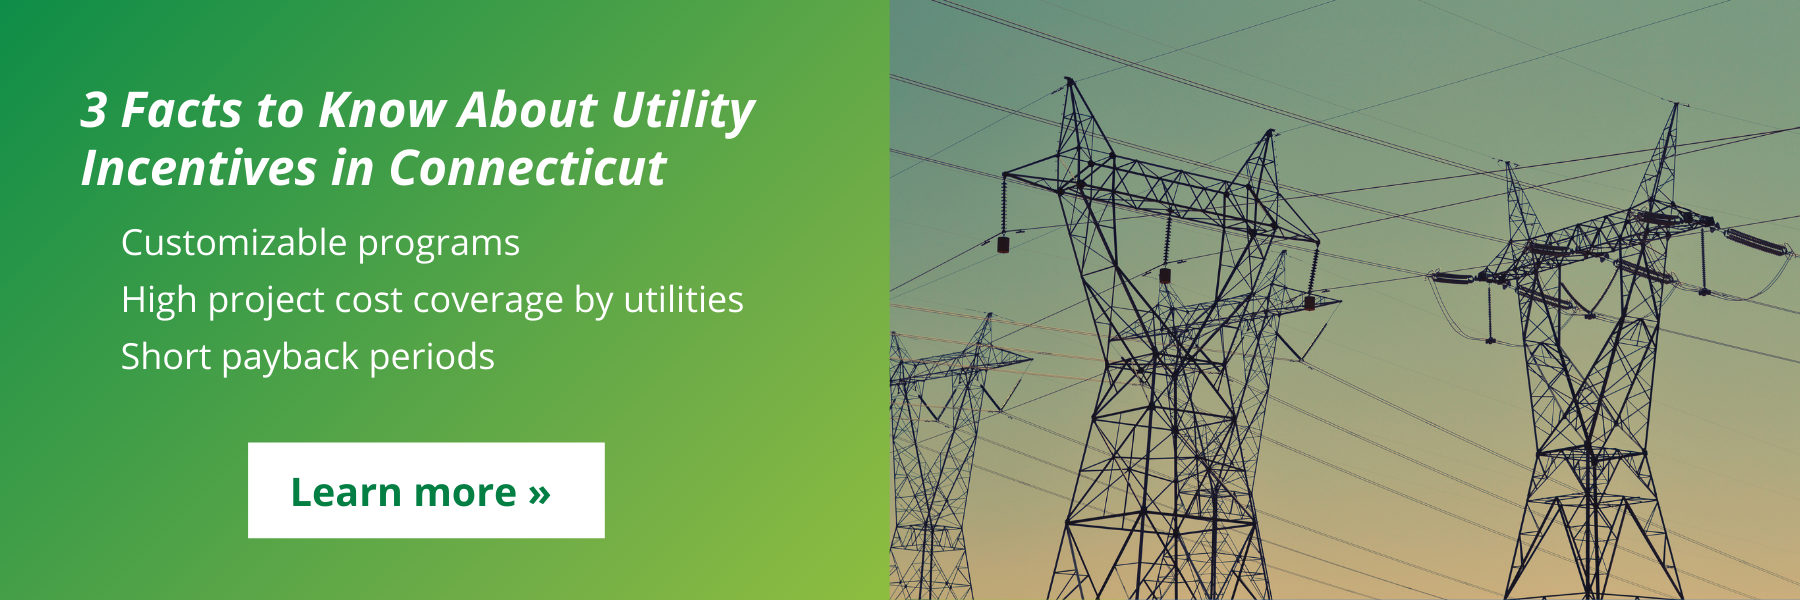 """Image of power lines with text stating """"3 Facts to Know about Utility Incentives in CT: Customizable programs, high project cost coverage by utilities, short payback periods"""", linking to a blog on securing Connecticut energy savings with help from utility incentive programs"""